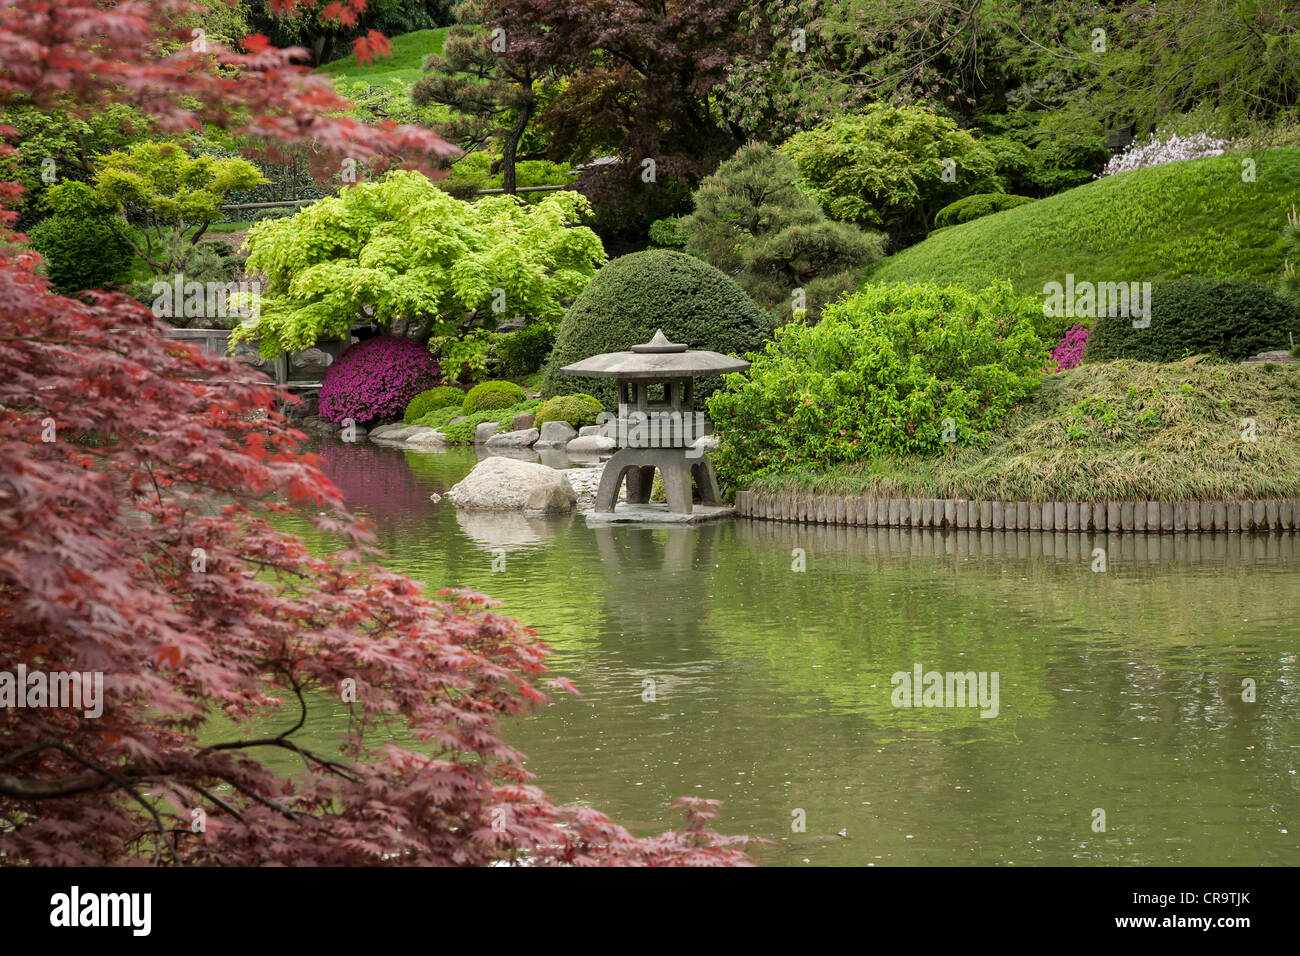 Japanese Hill And Pond Garden In The Brooklyn Botanic Garden Nyc Stock Photo Royalty Free